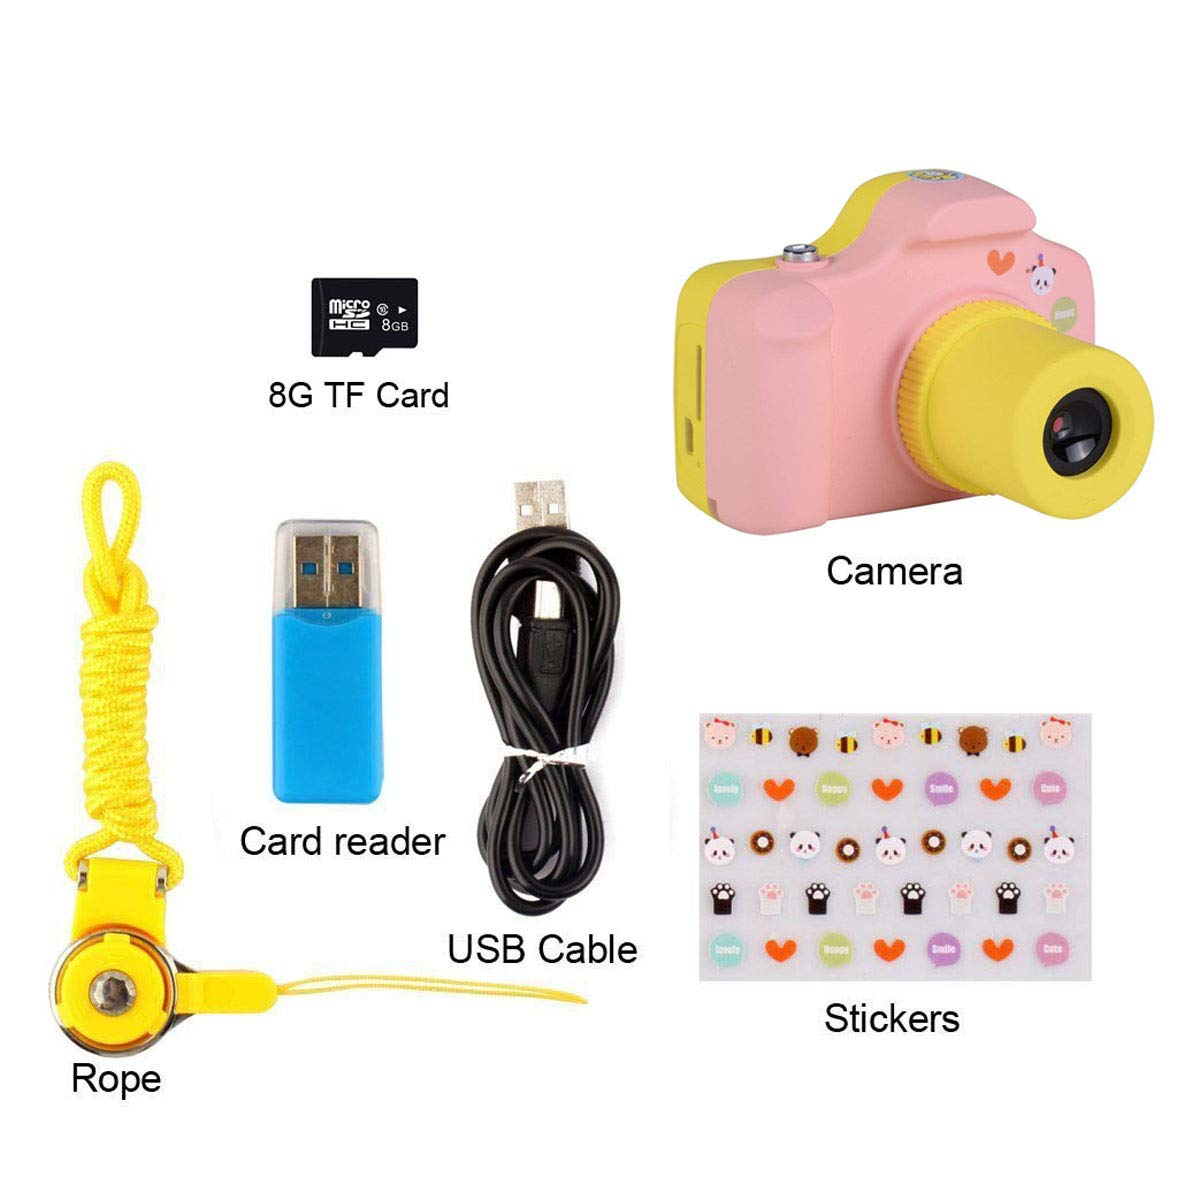 PANNOVO YT001 Mini 1.5 Inch Screen Children Kids Digital Camera with 8GB Cards(Pink) by PANNOVO (Image #7)